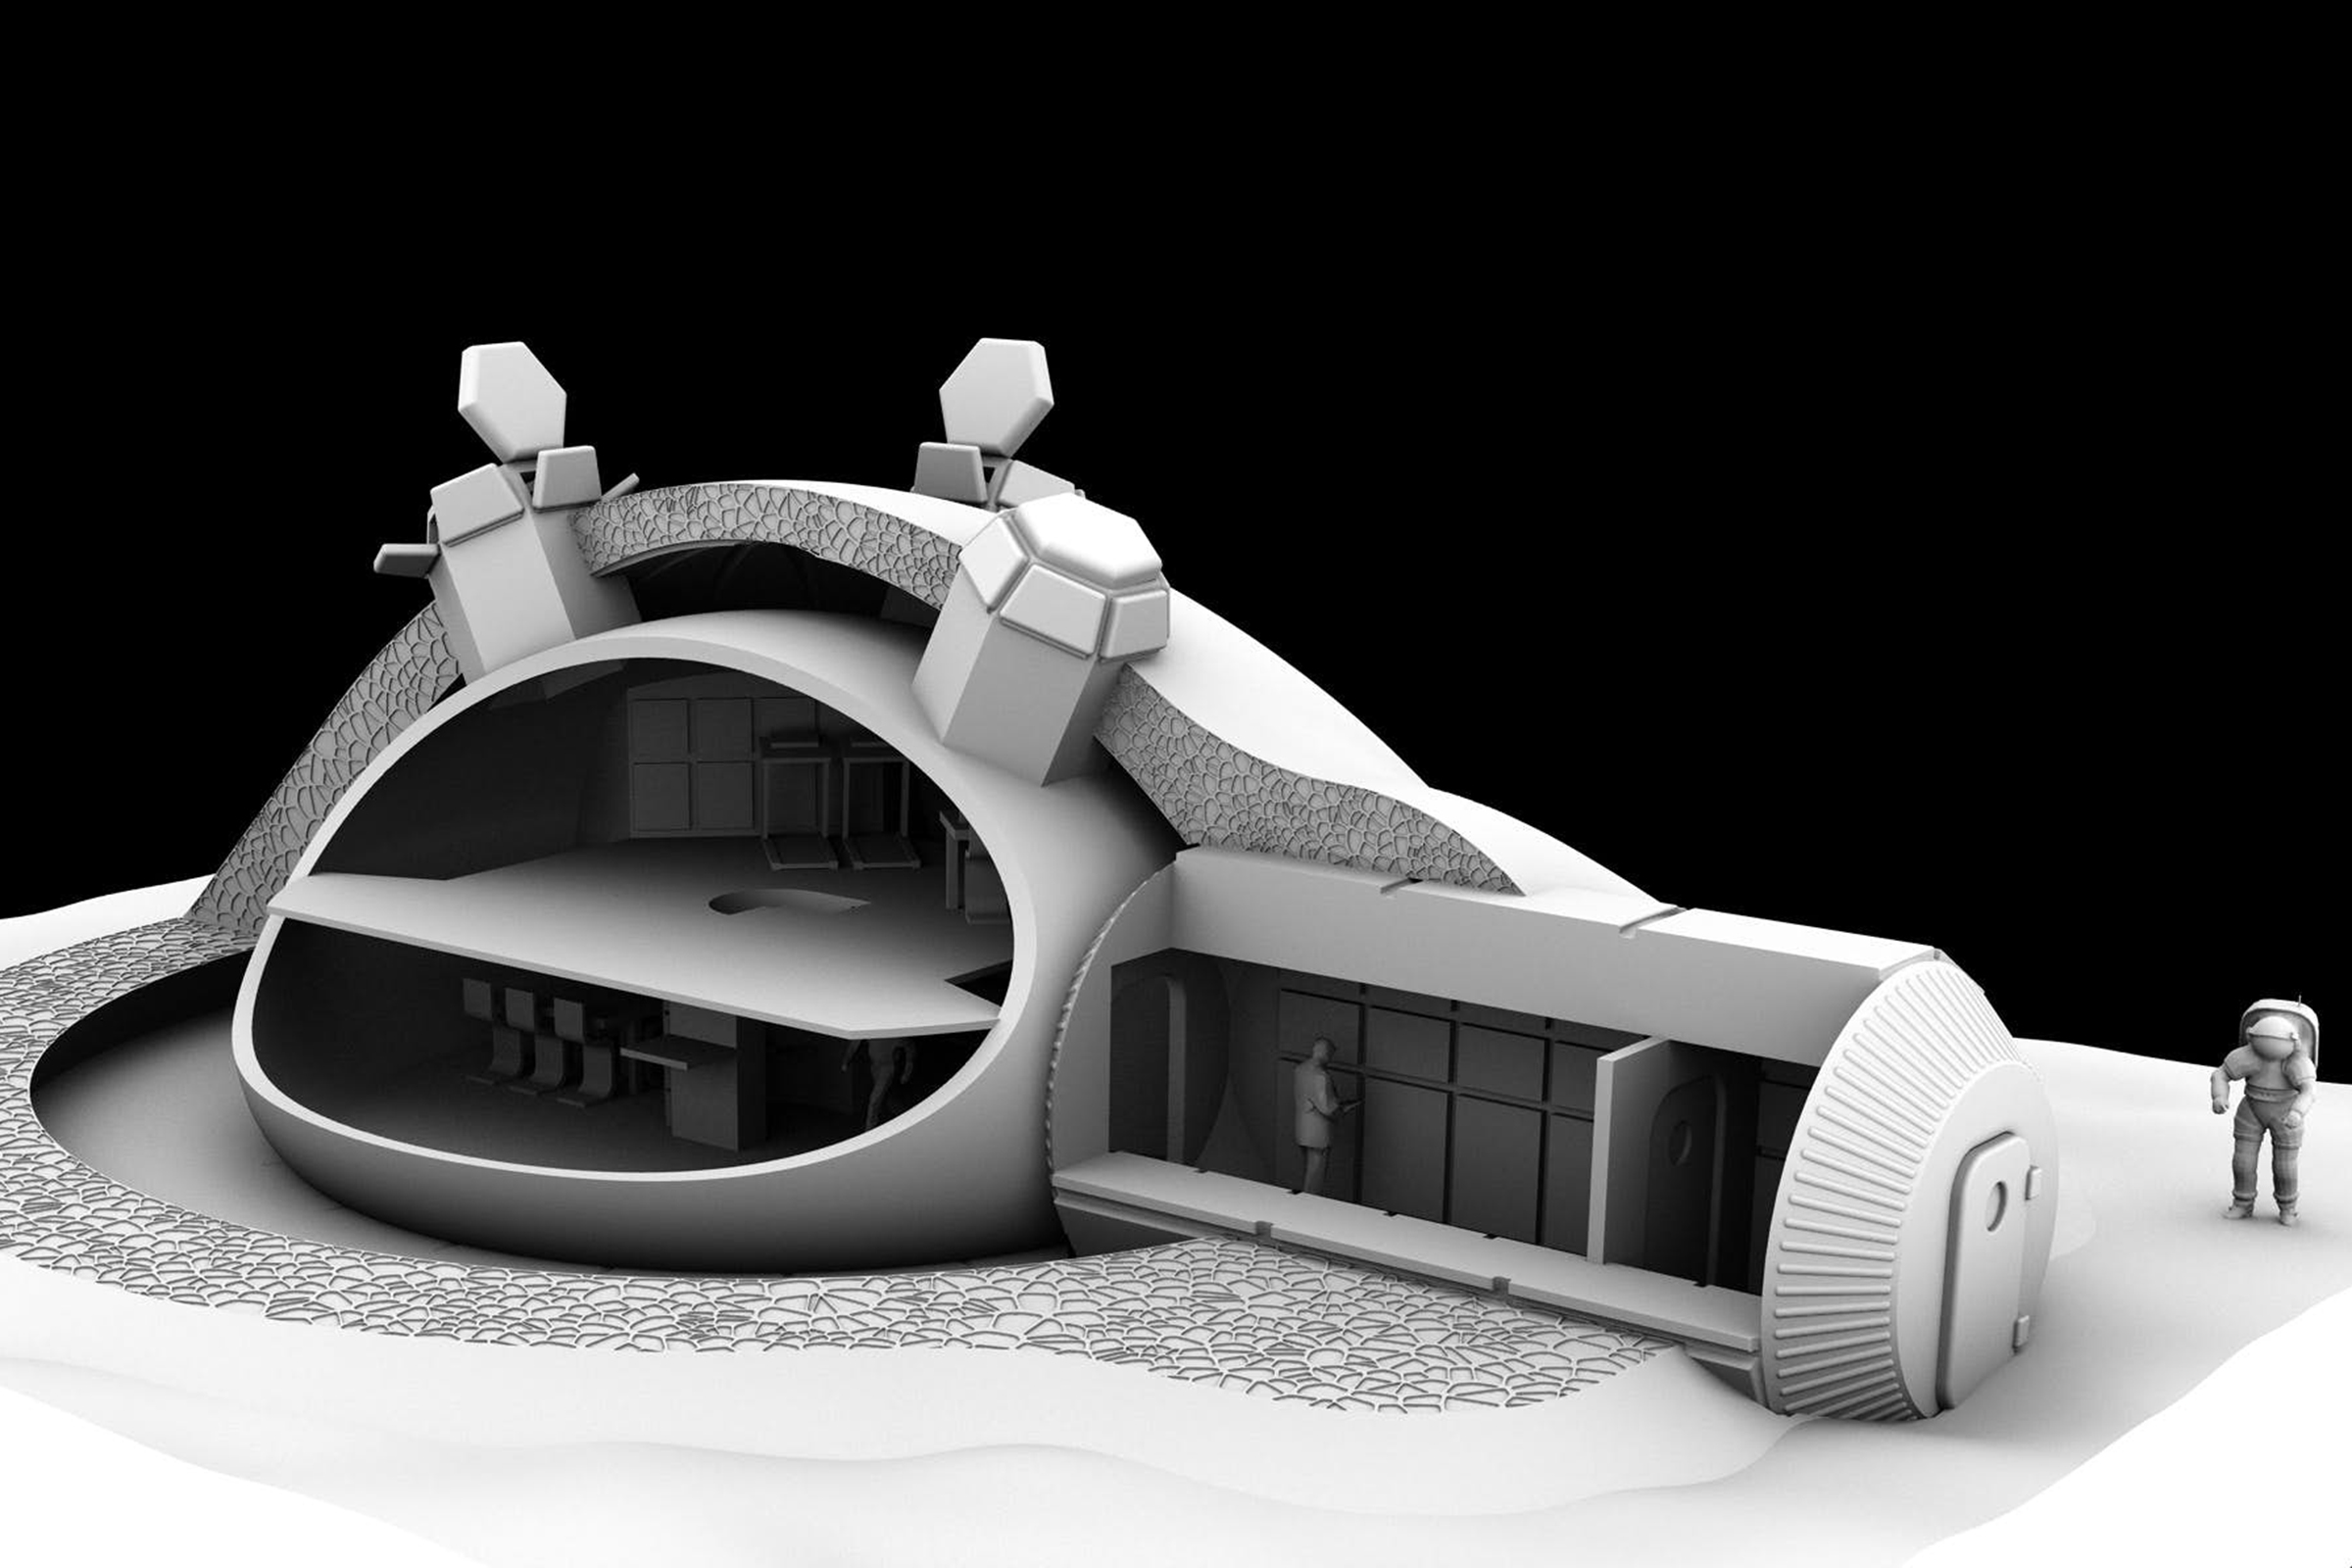 The Lunar Habitation concept would be based on 3D printing techniques, where regolith (rock and dust) from the lunar surface is heated and laid by drones in patterns, to form the required shapes.